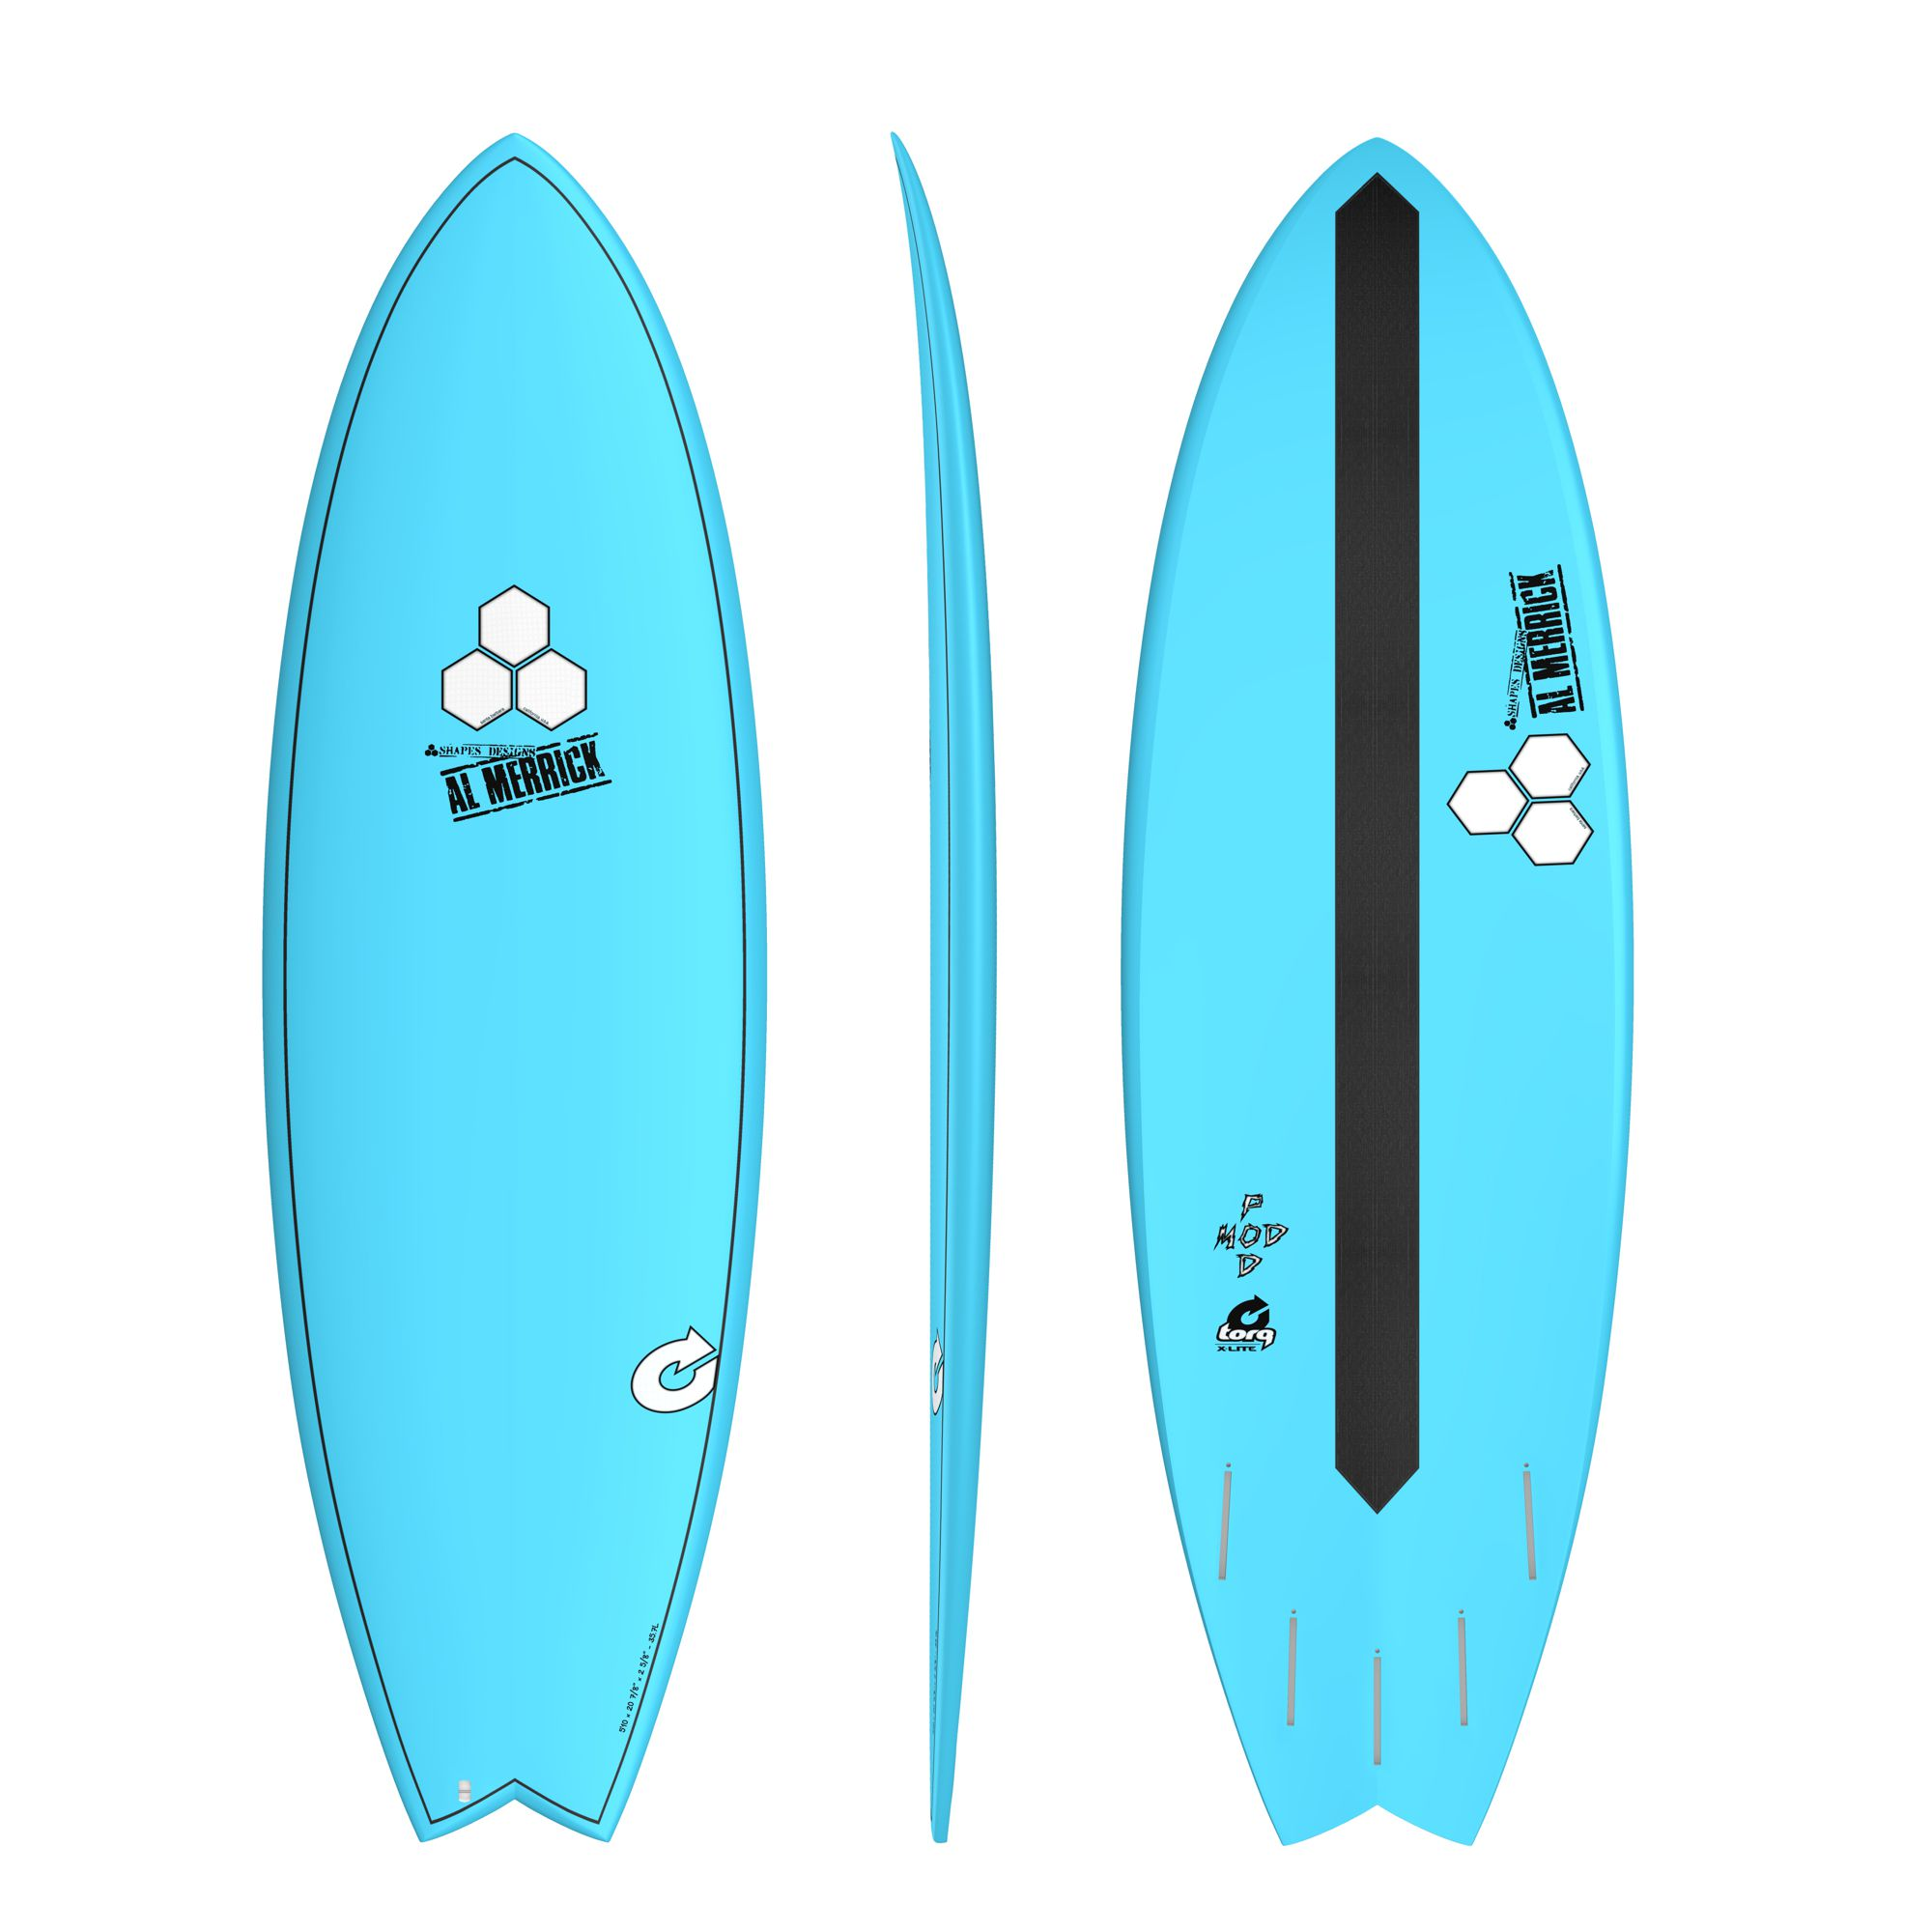 Surfboard CHANNEL ISLANDS X-lite Pod Mod 5.6 blue